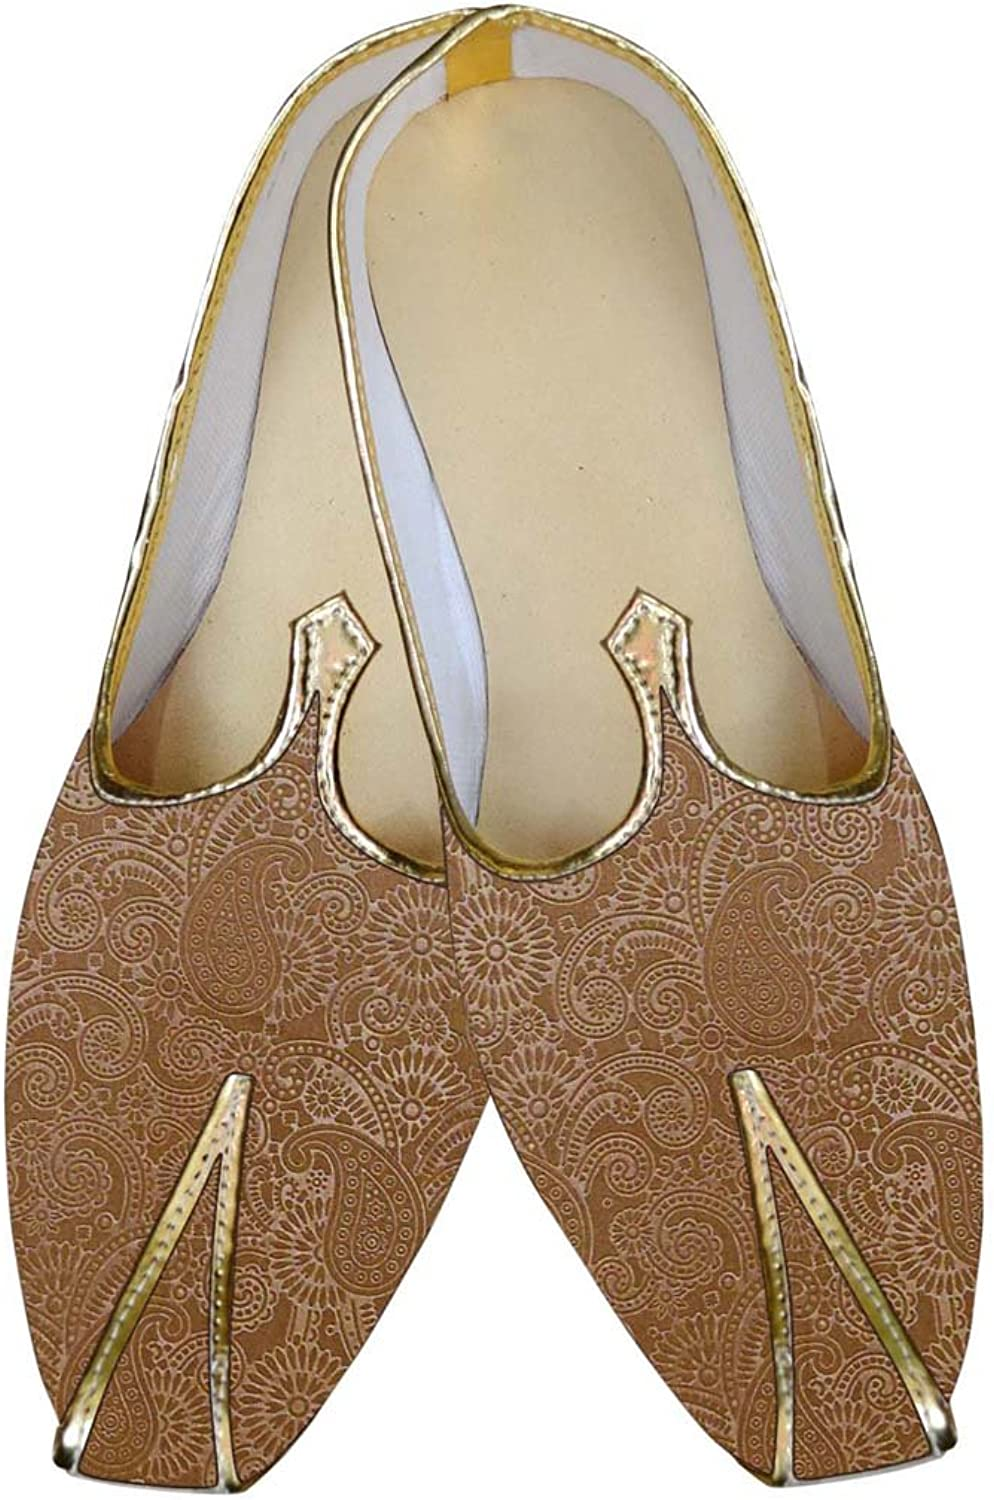 INMONARCH Mens Bisque Wedding shoes Paisley Pattern MJ015648